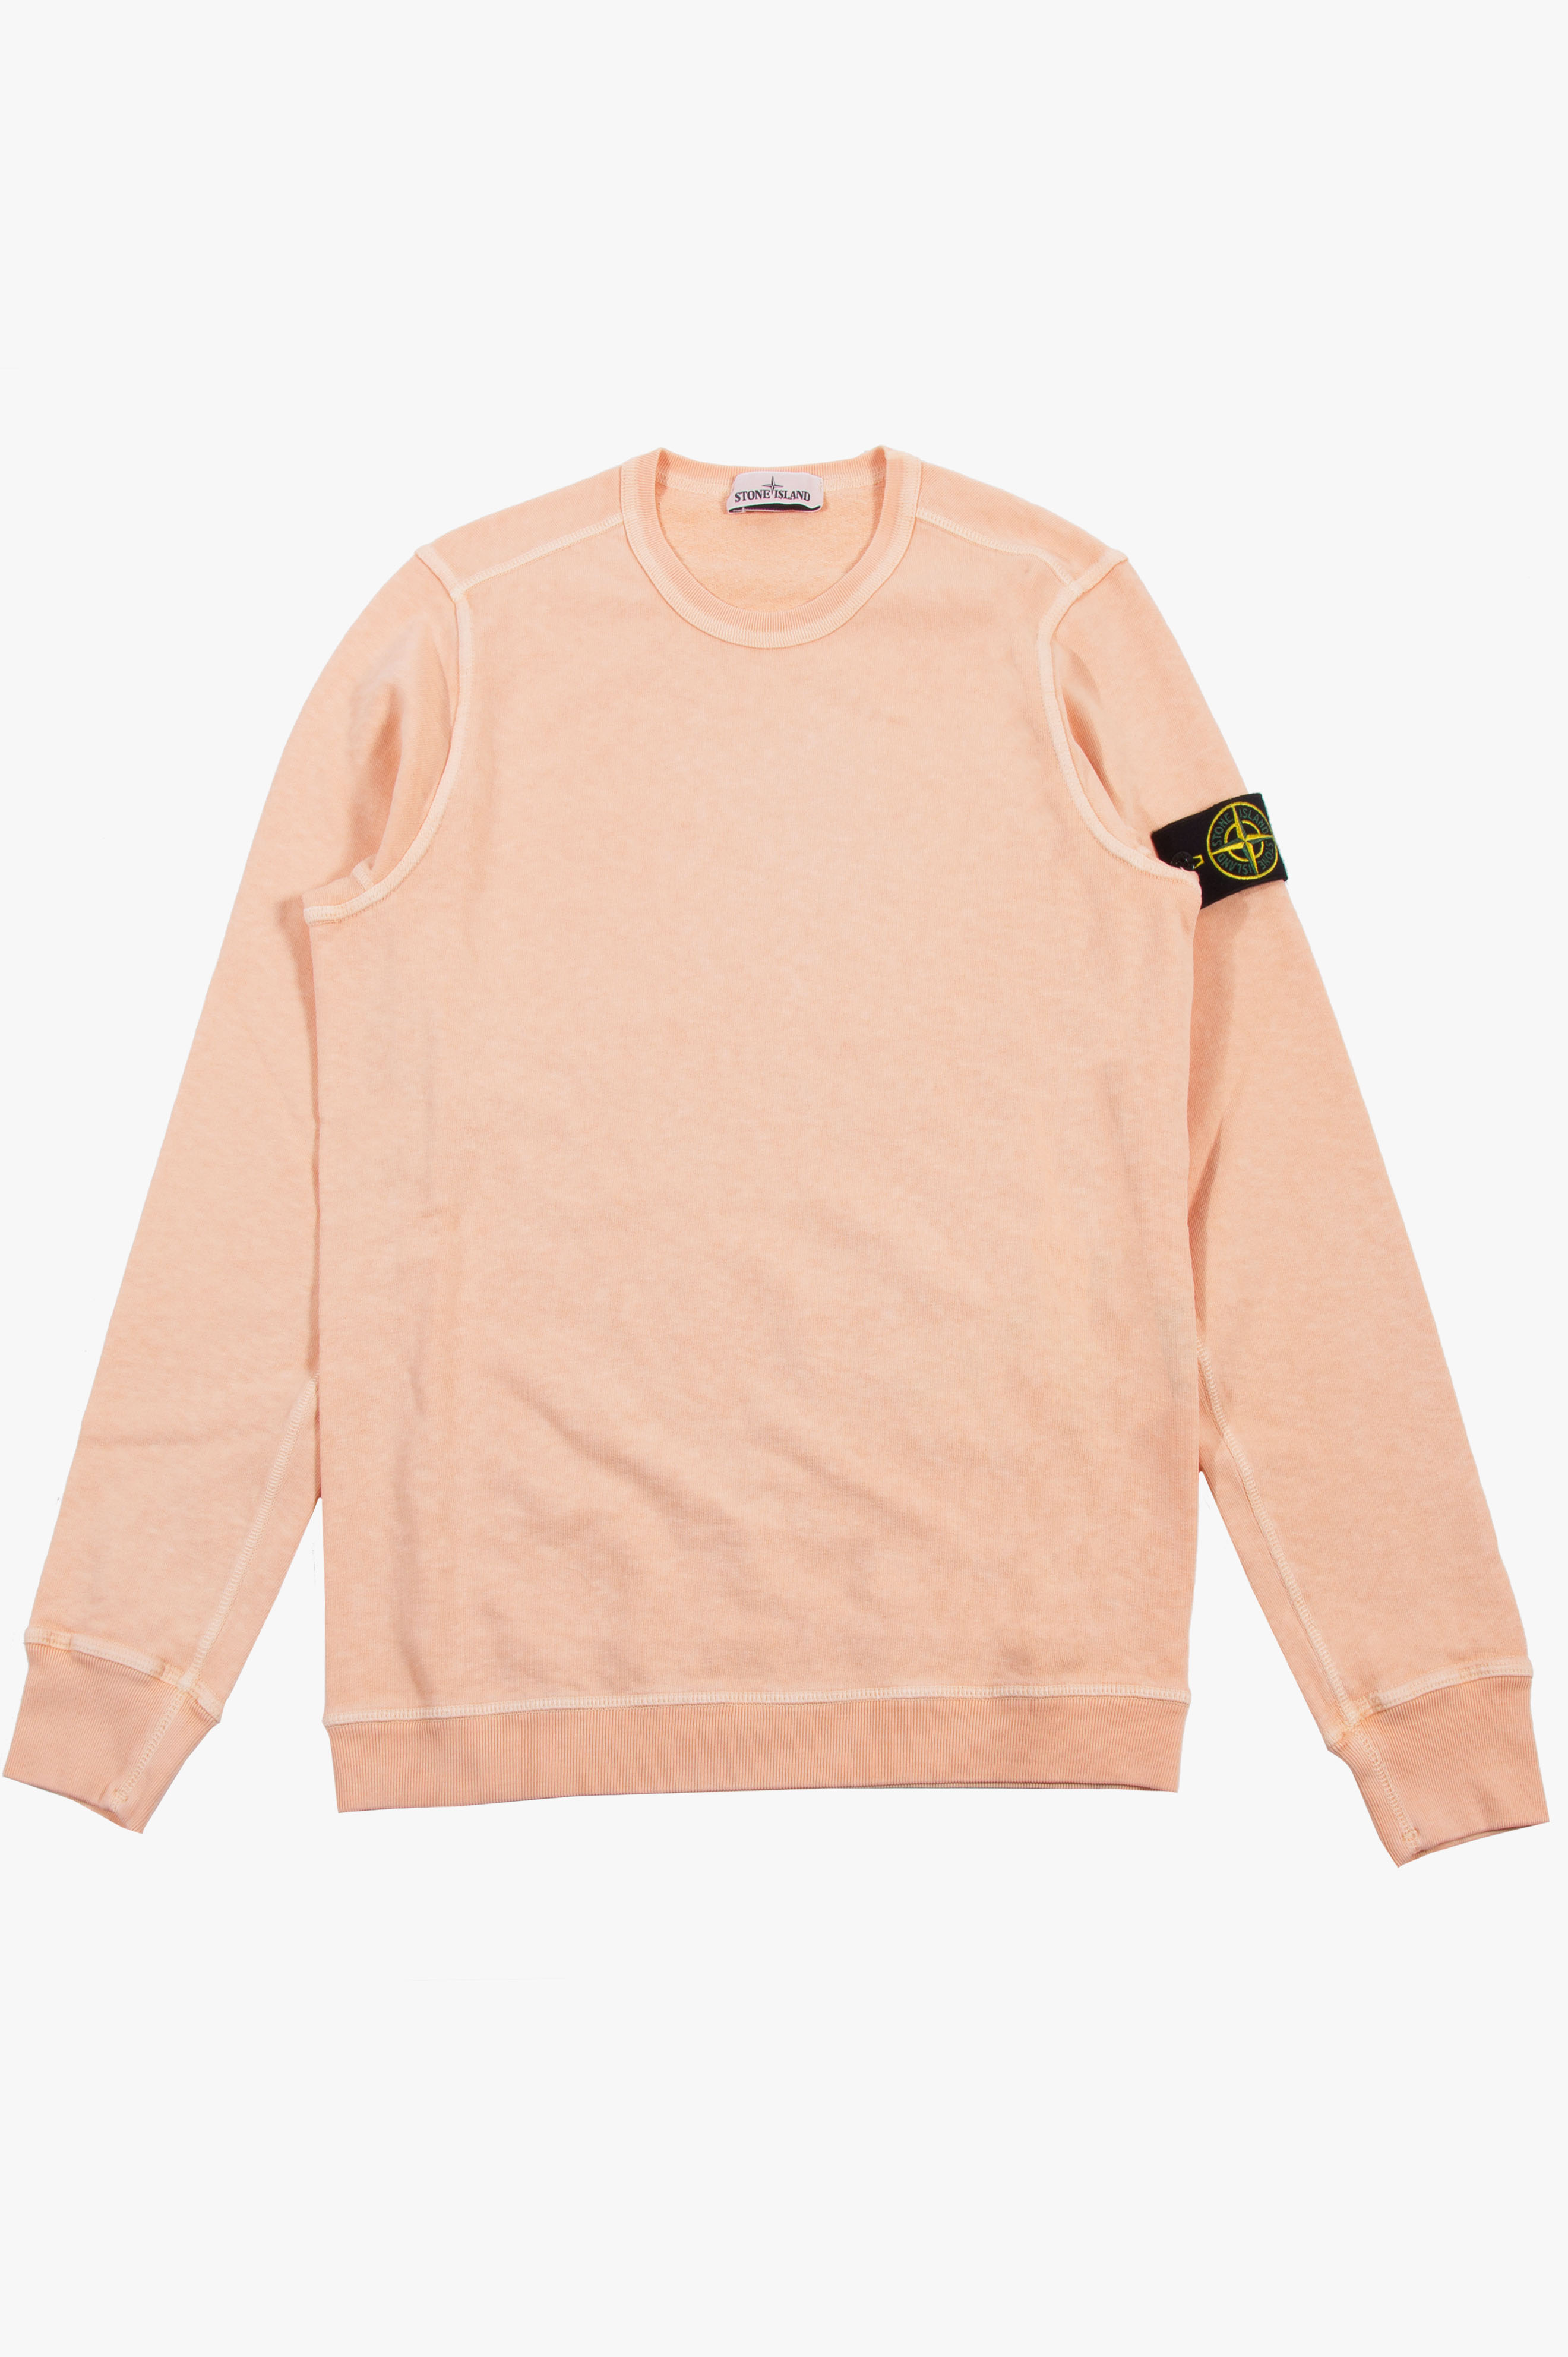 Sweatshirt Salmon